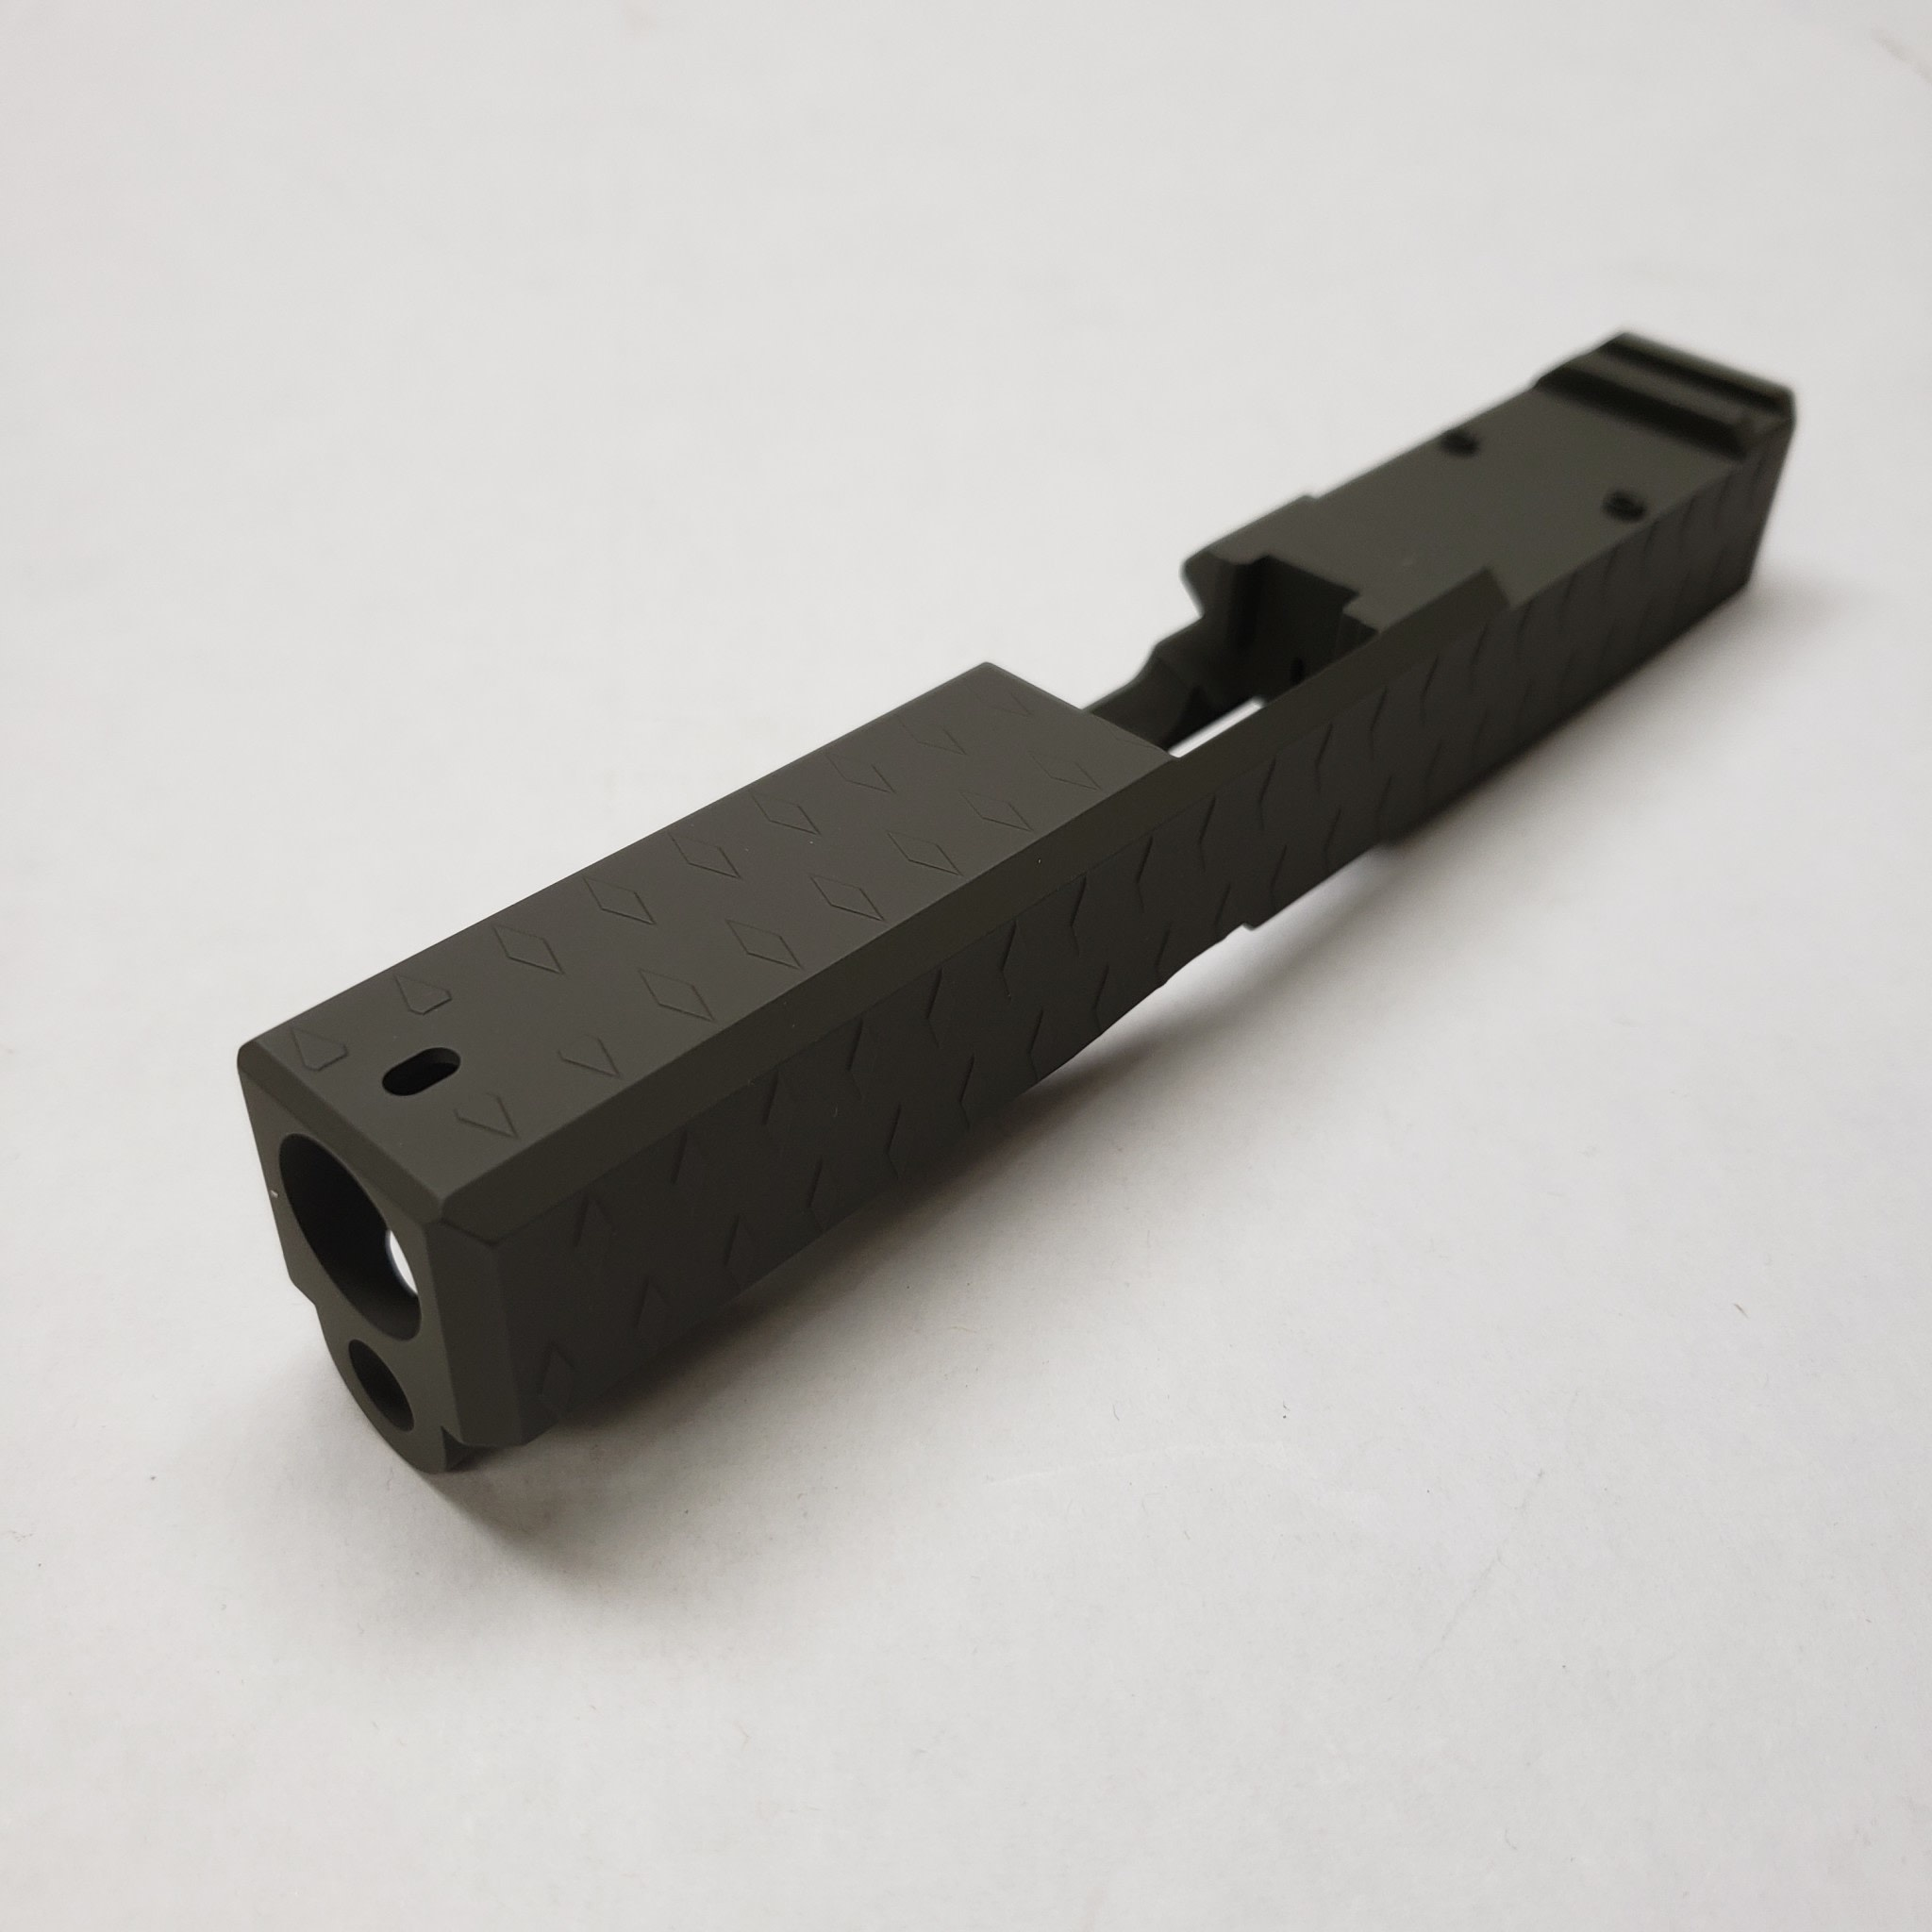 FU Glock Slide T3 Stripped G23 40 S&W